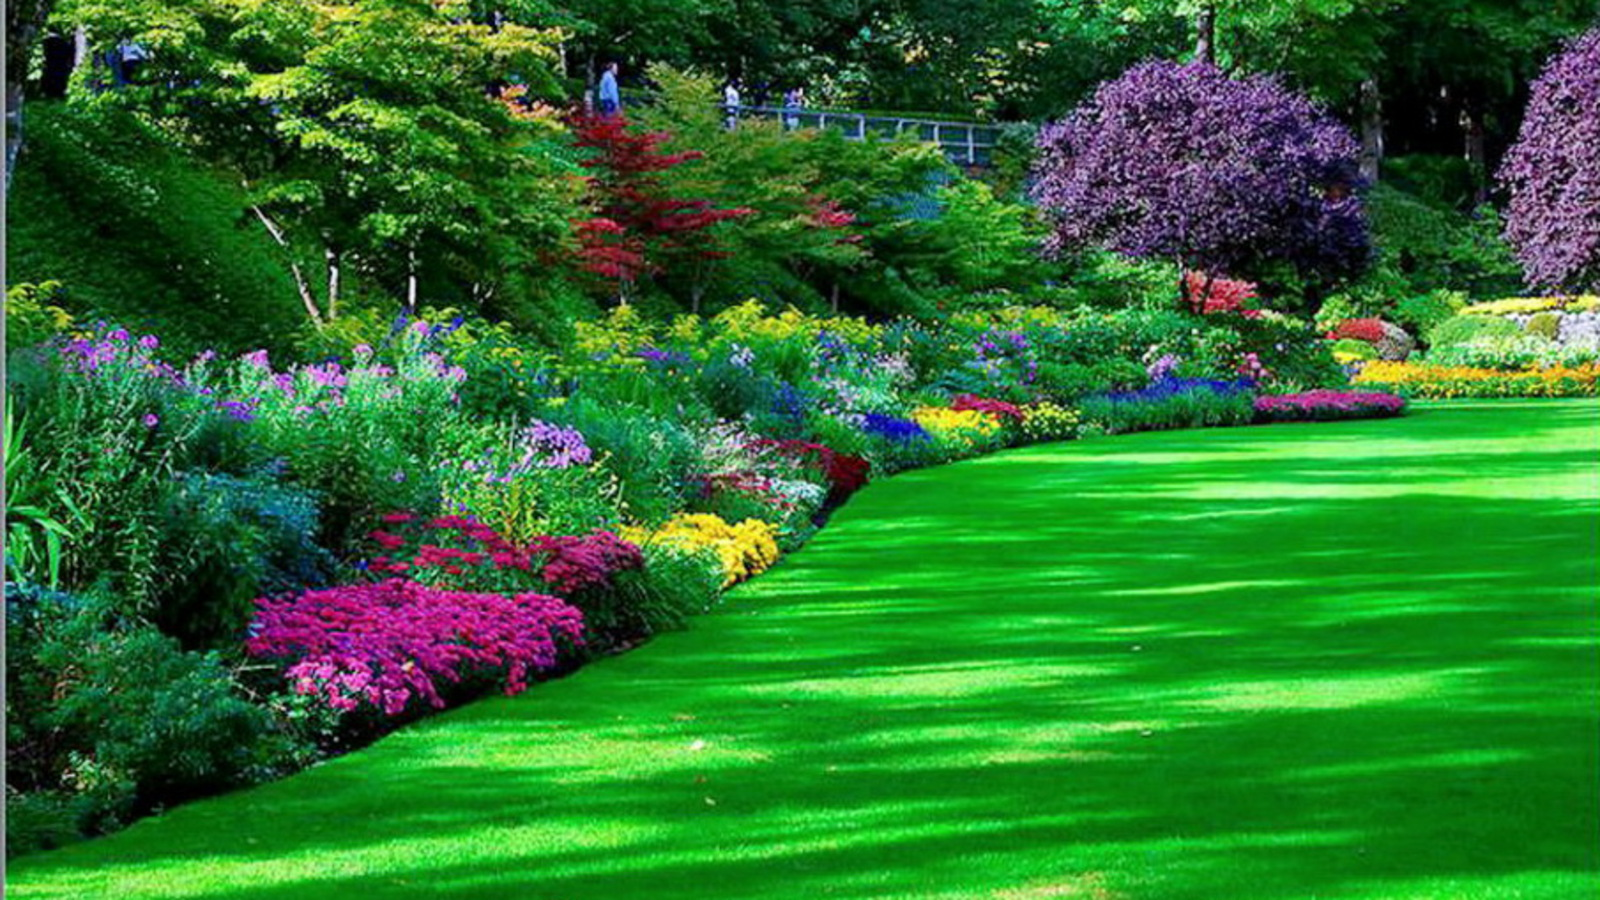 Hd wallpaper garden - Hd Wallpaper Garden 0